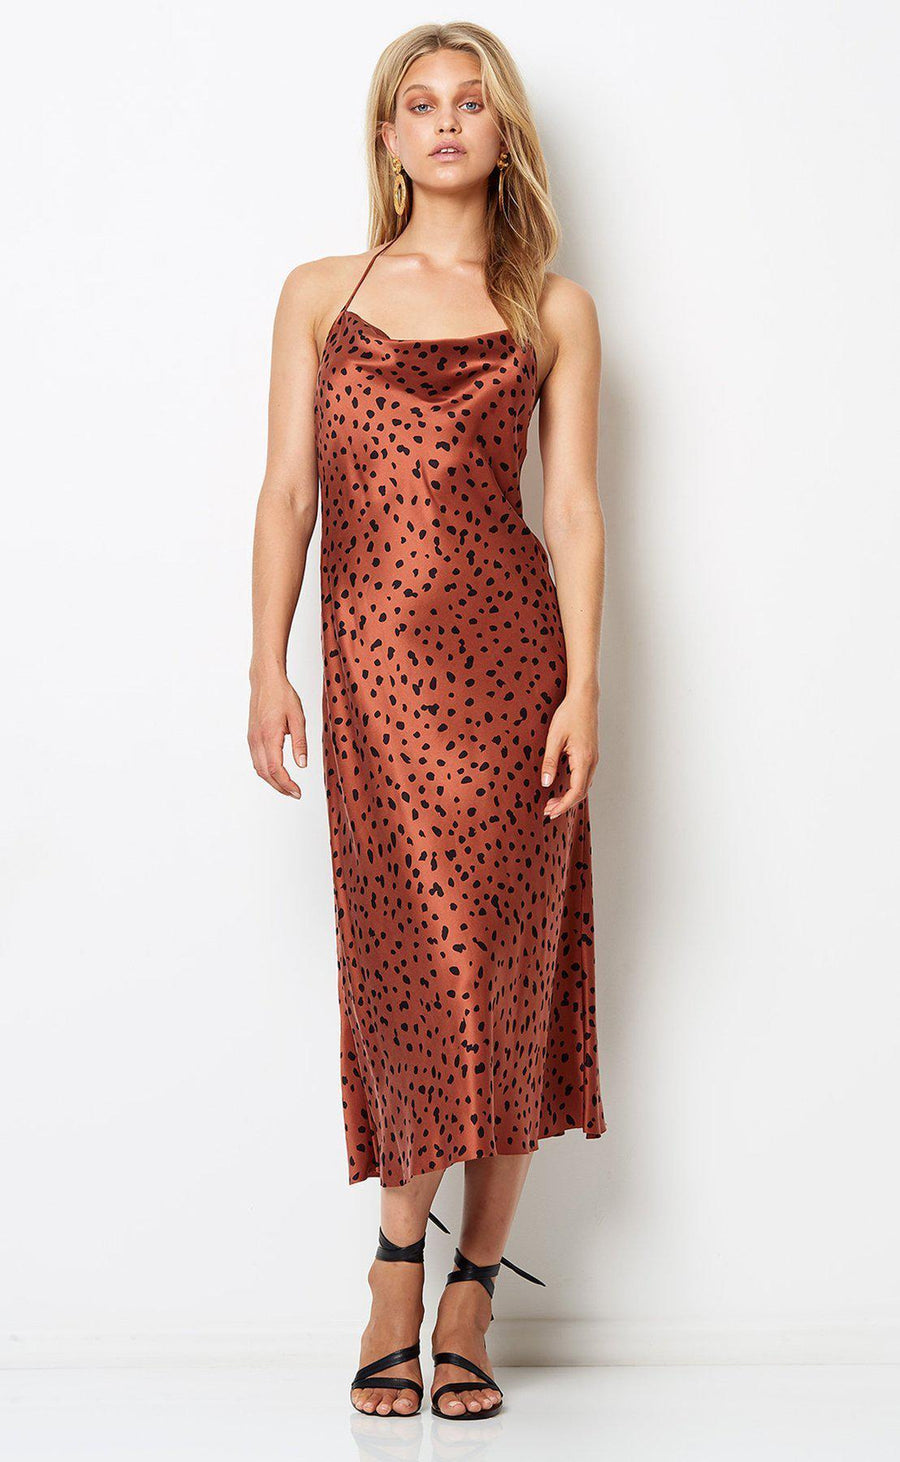 Bec and Bridge Wild Cat Halter Dress